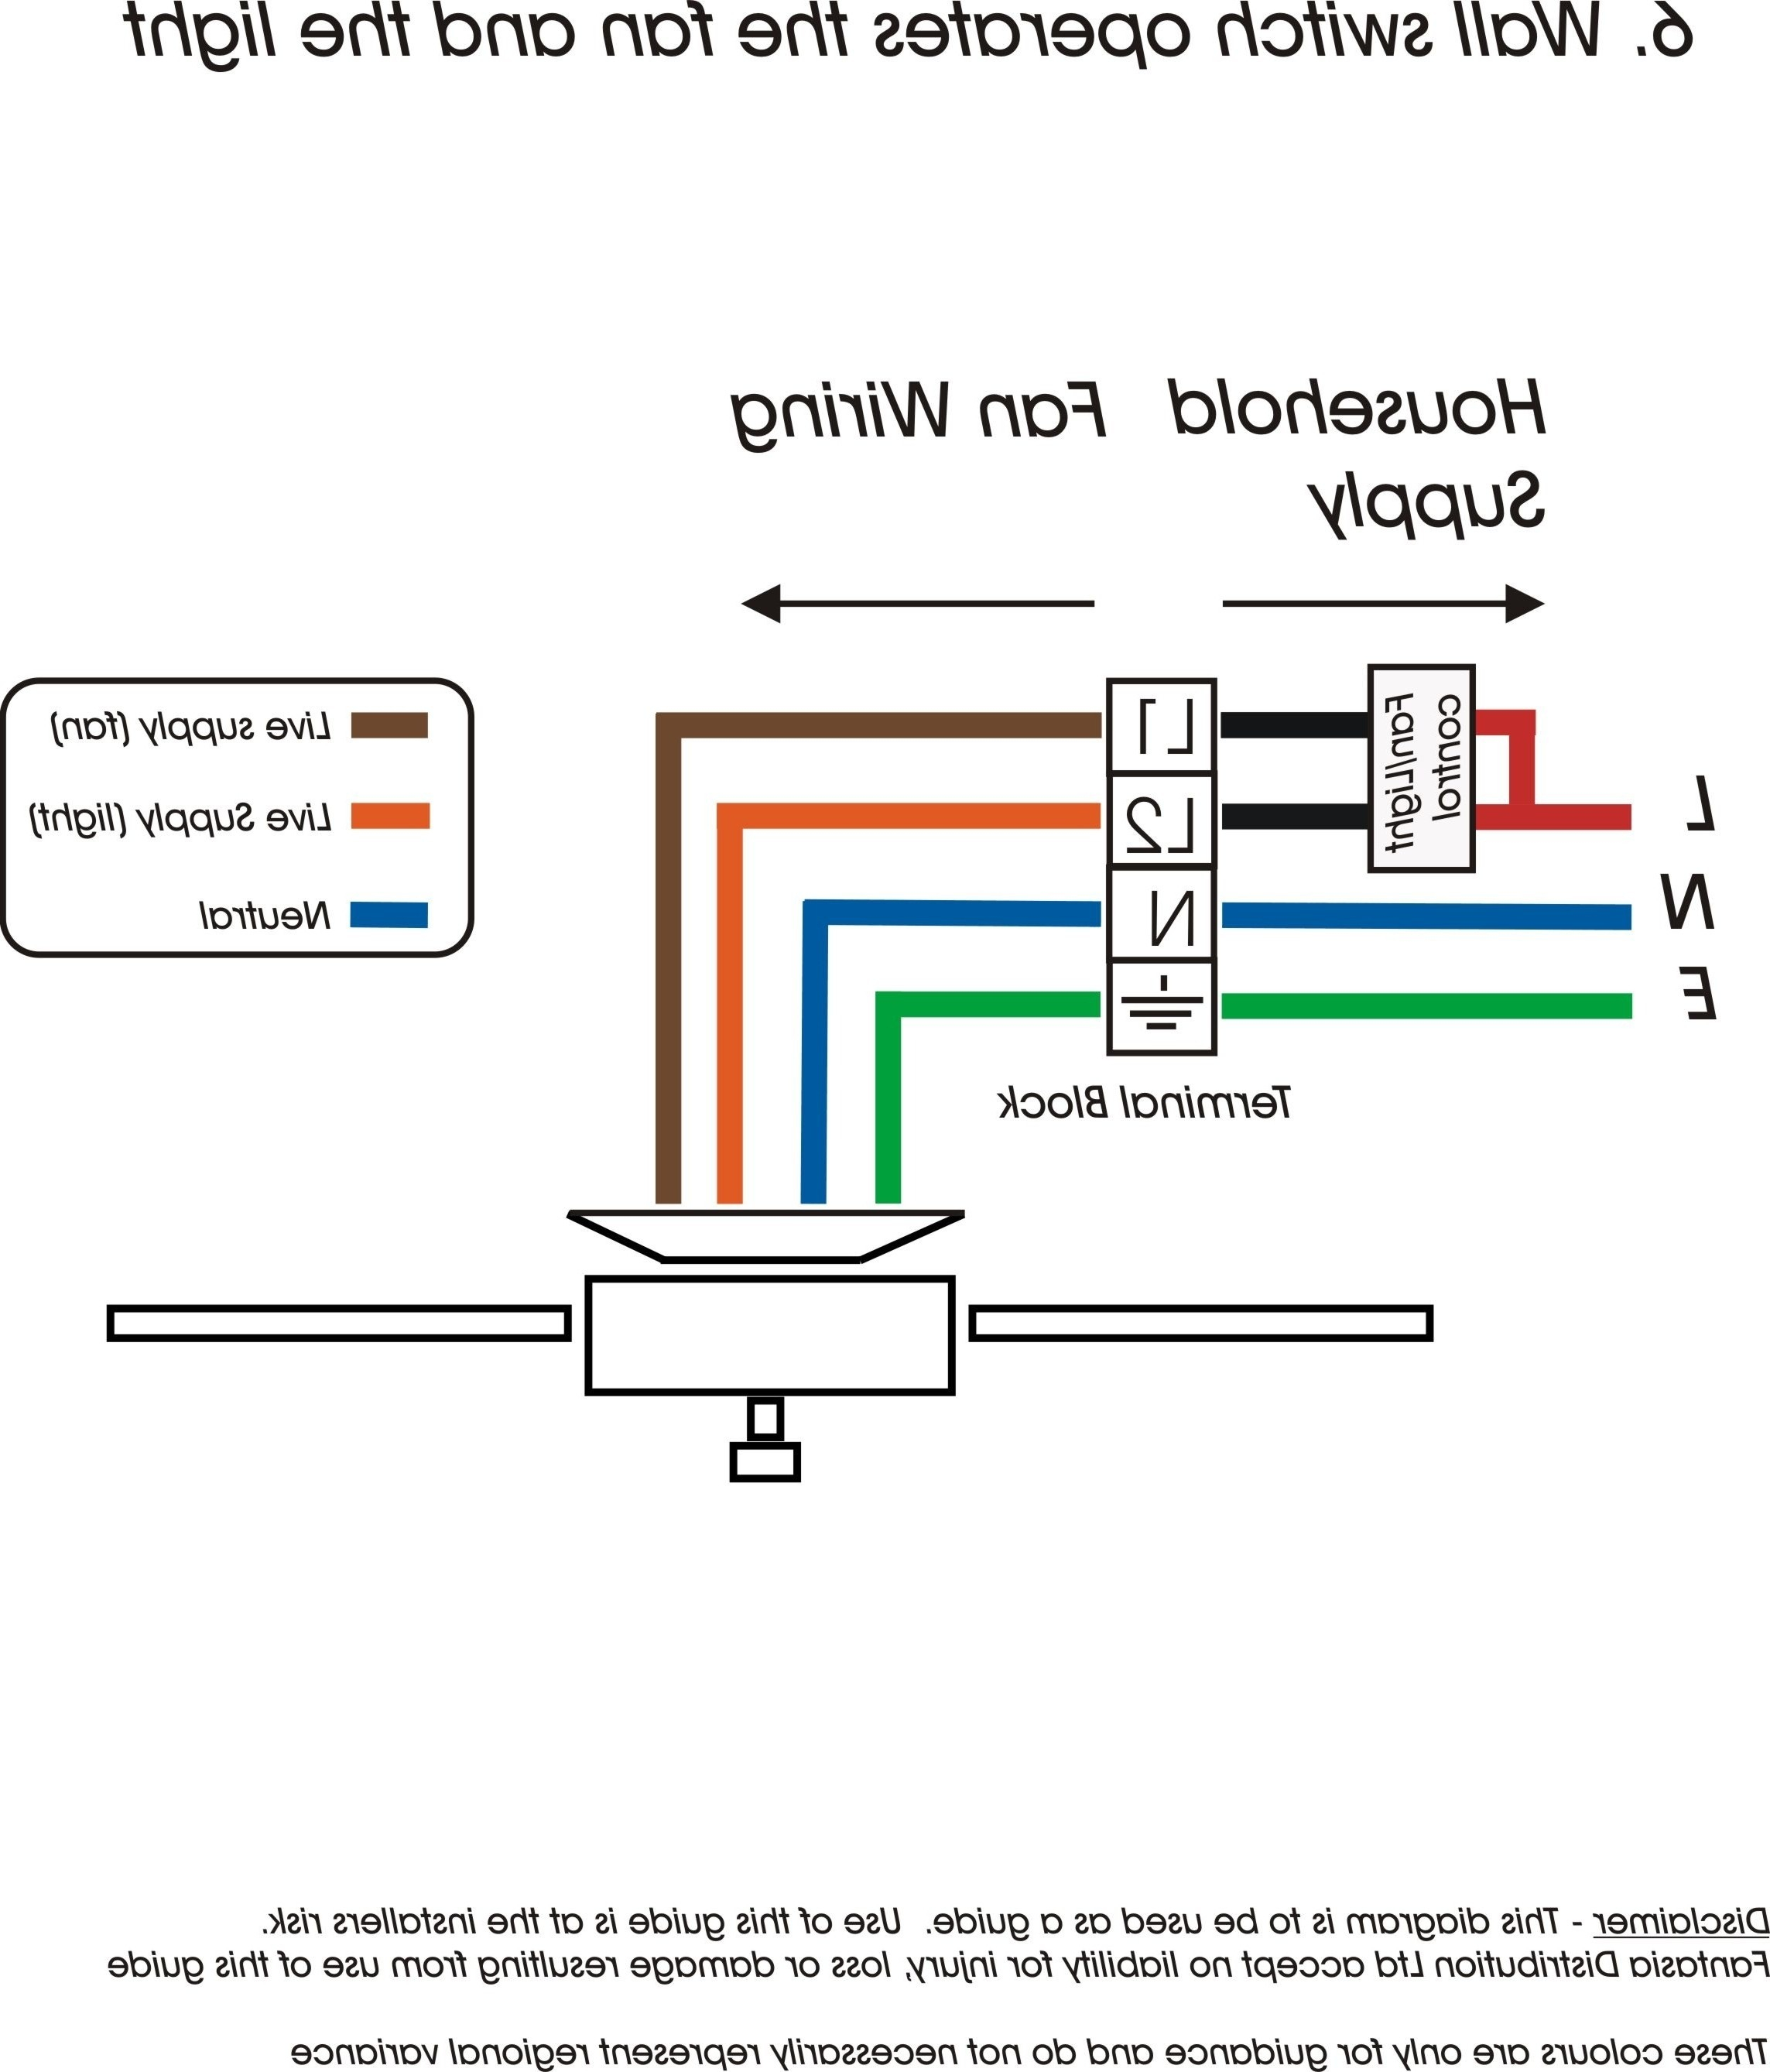 wiring diagram 3 way switch ceiling fan and light Download-Three Way Light Switch Wiring Diagram Best Wiring Diagram 3 Way Switch Ceiling Fan and 11-h